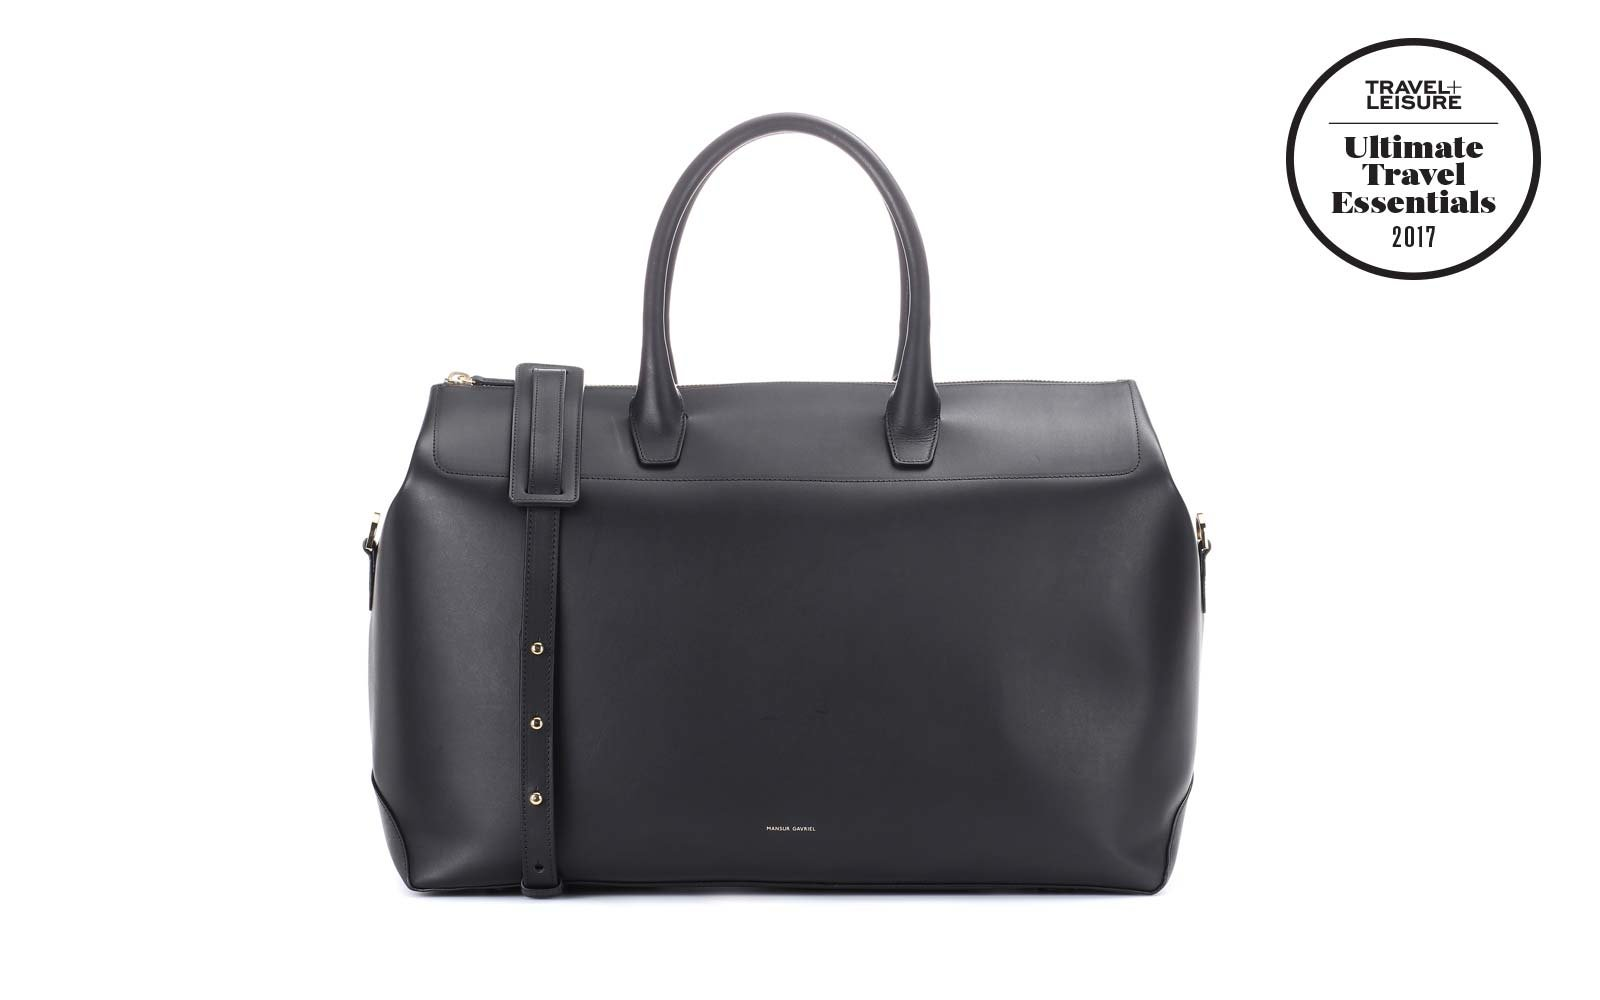 Mansur Gavriel Leather Travel Bag